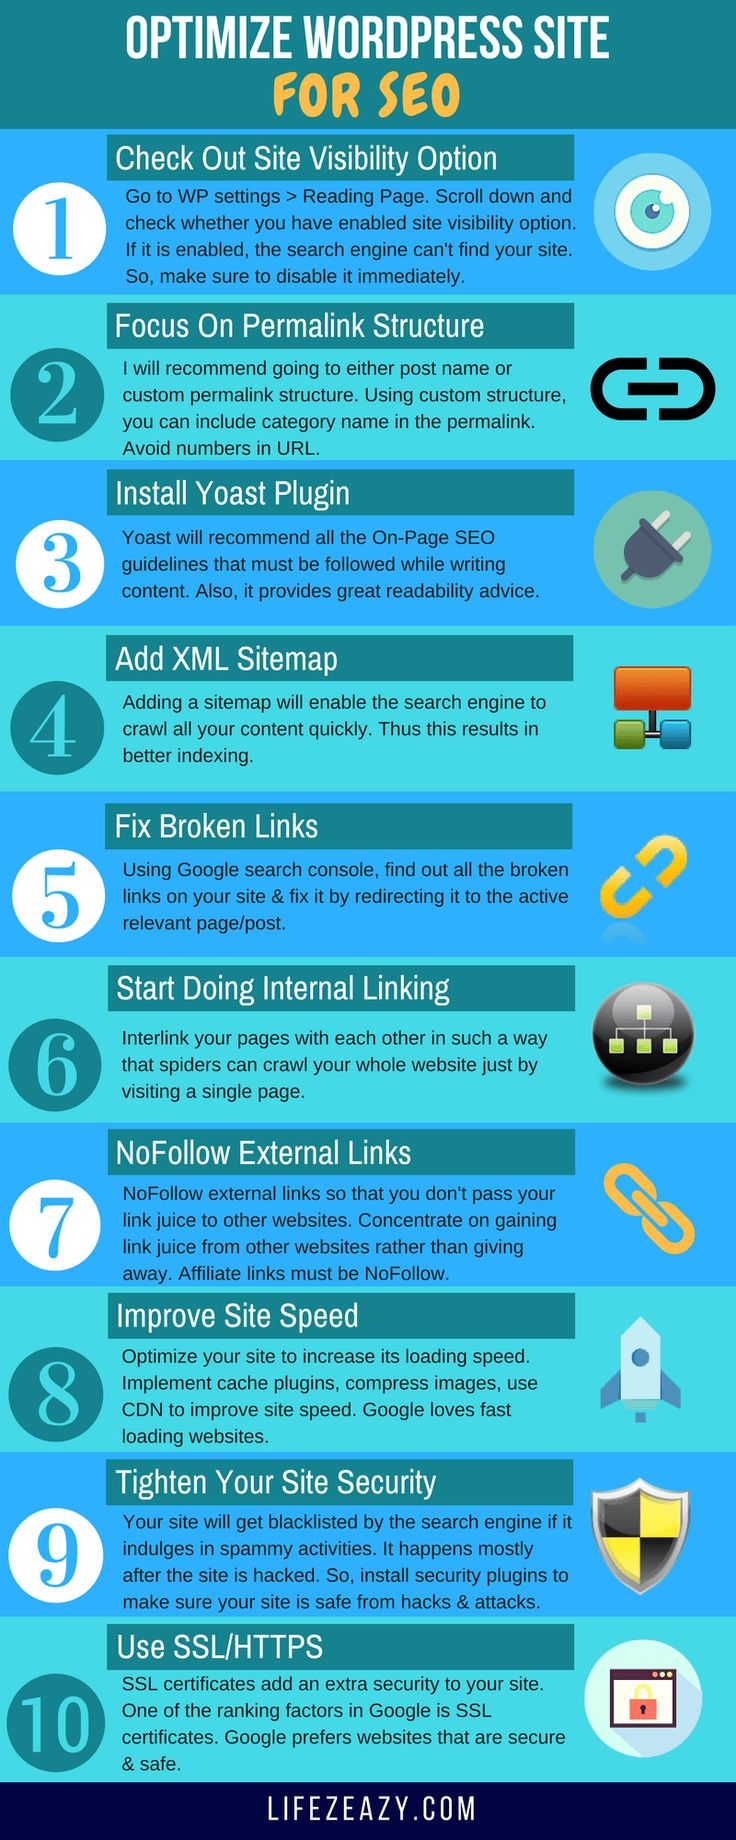 If you want to optimize Wordpress site for SEO, then check out this Infographic which states 10 steps to make your site SEO friendly. You can read the whole article to get in-depth information.